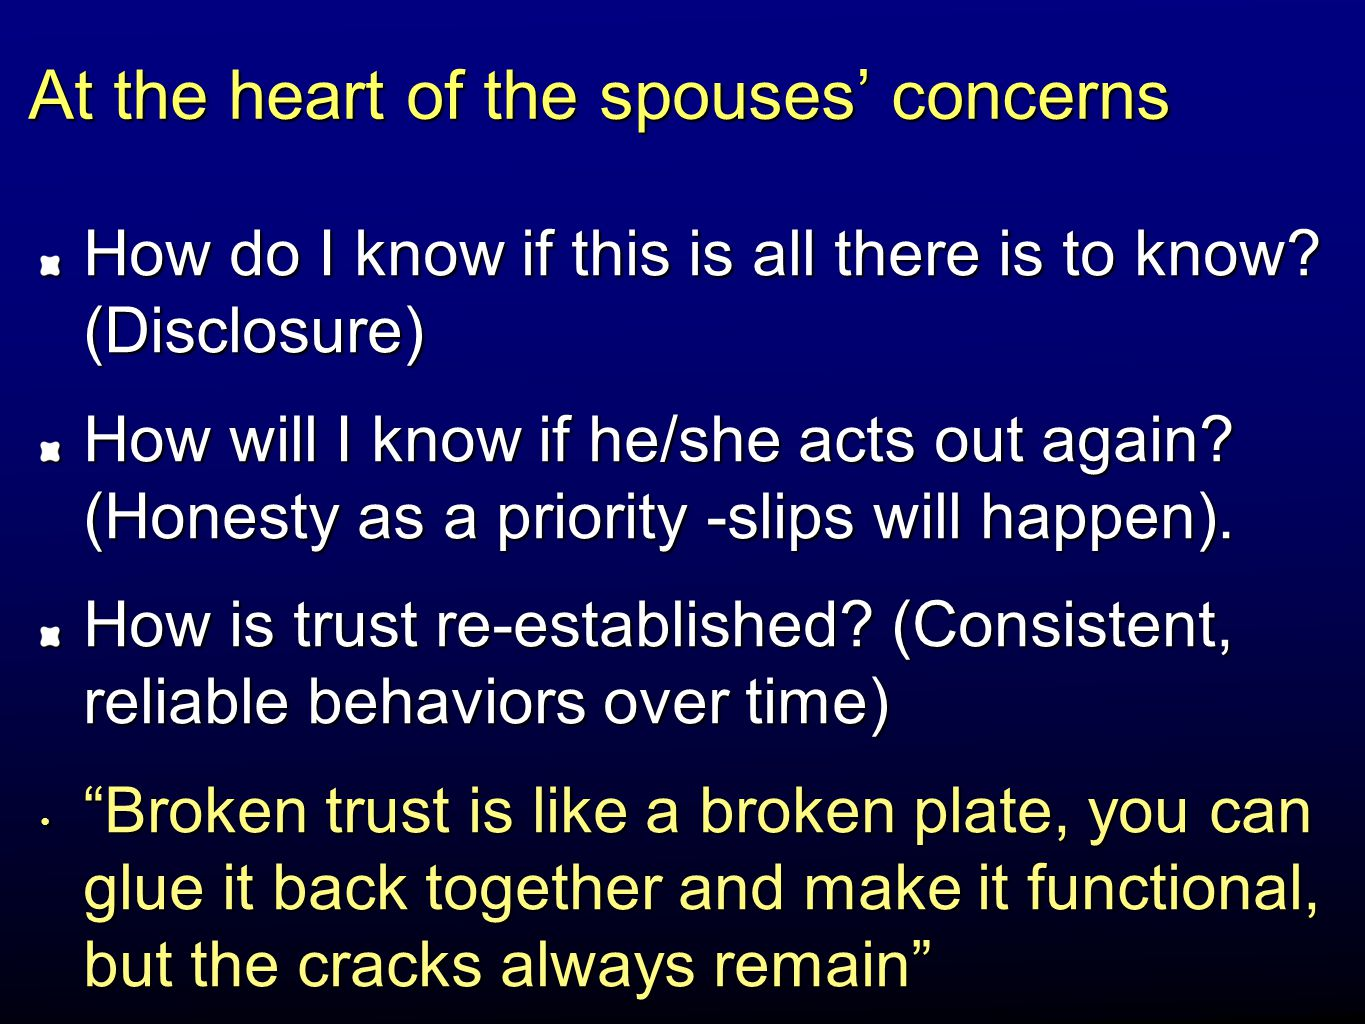 At the heart of the spouses' concerns